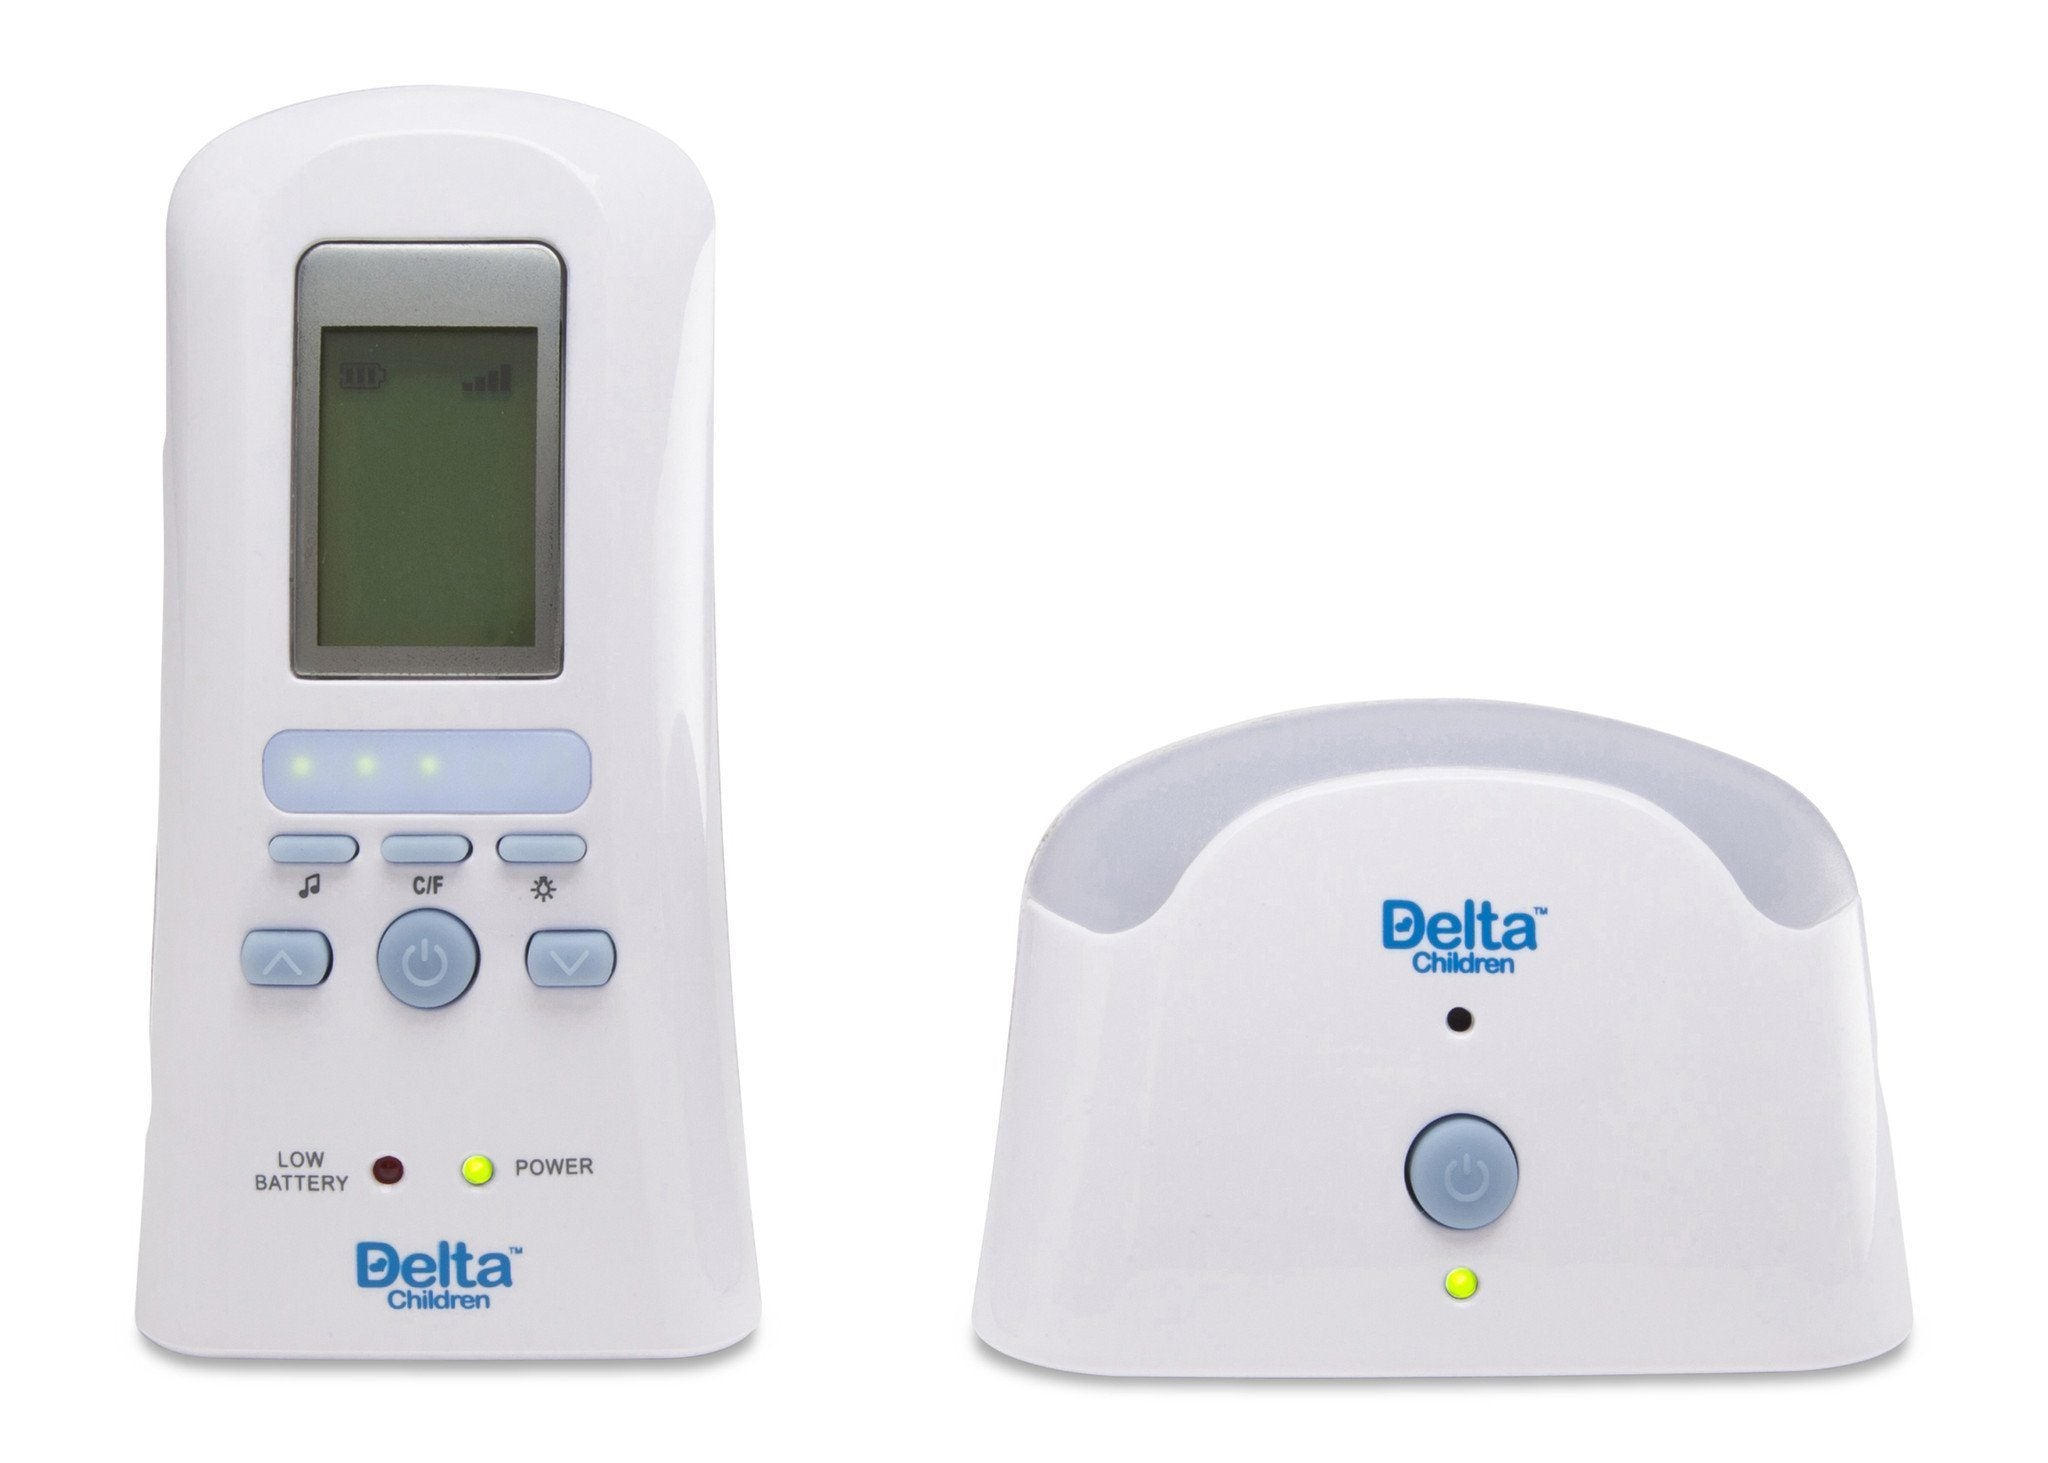 Delta Children White (114) Safe-n-Clear Digital Audio Monitor with Temperature Sensor, Front View a2a